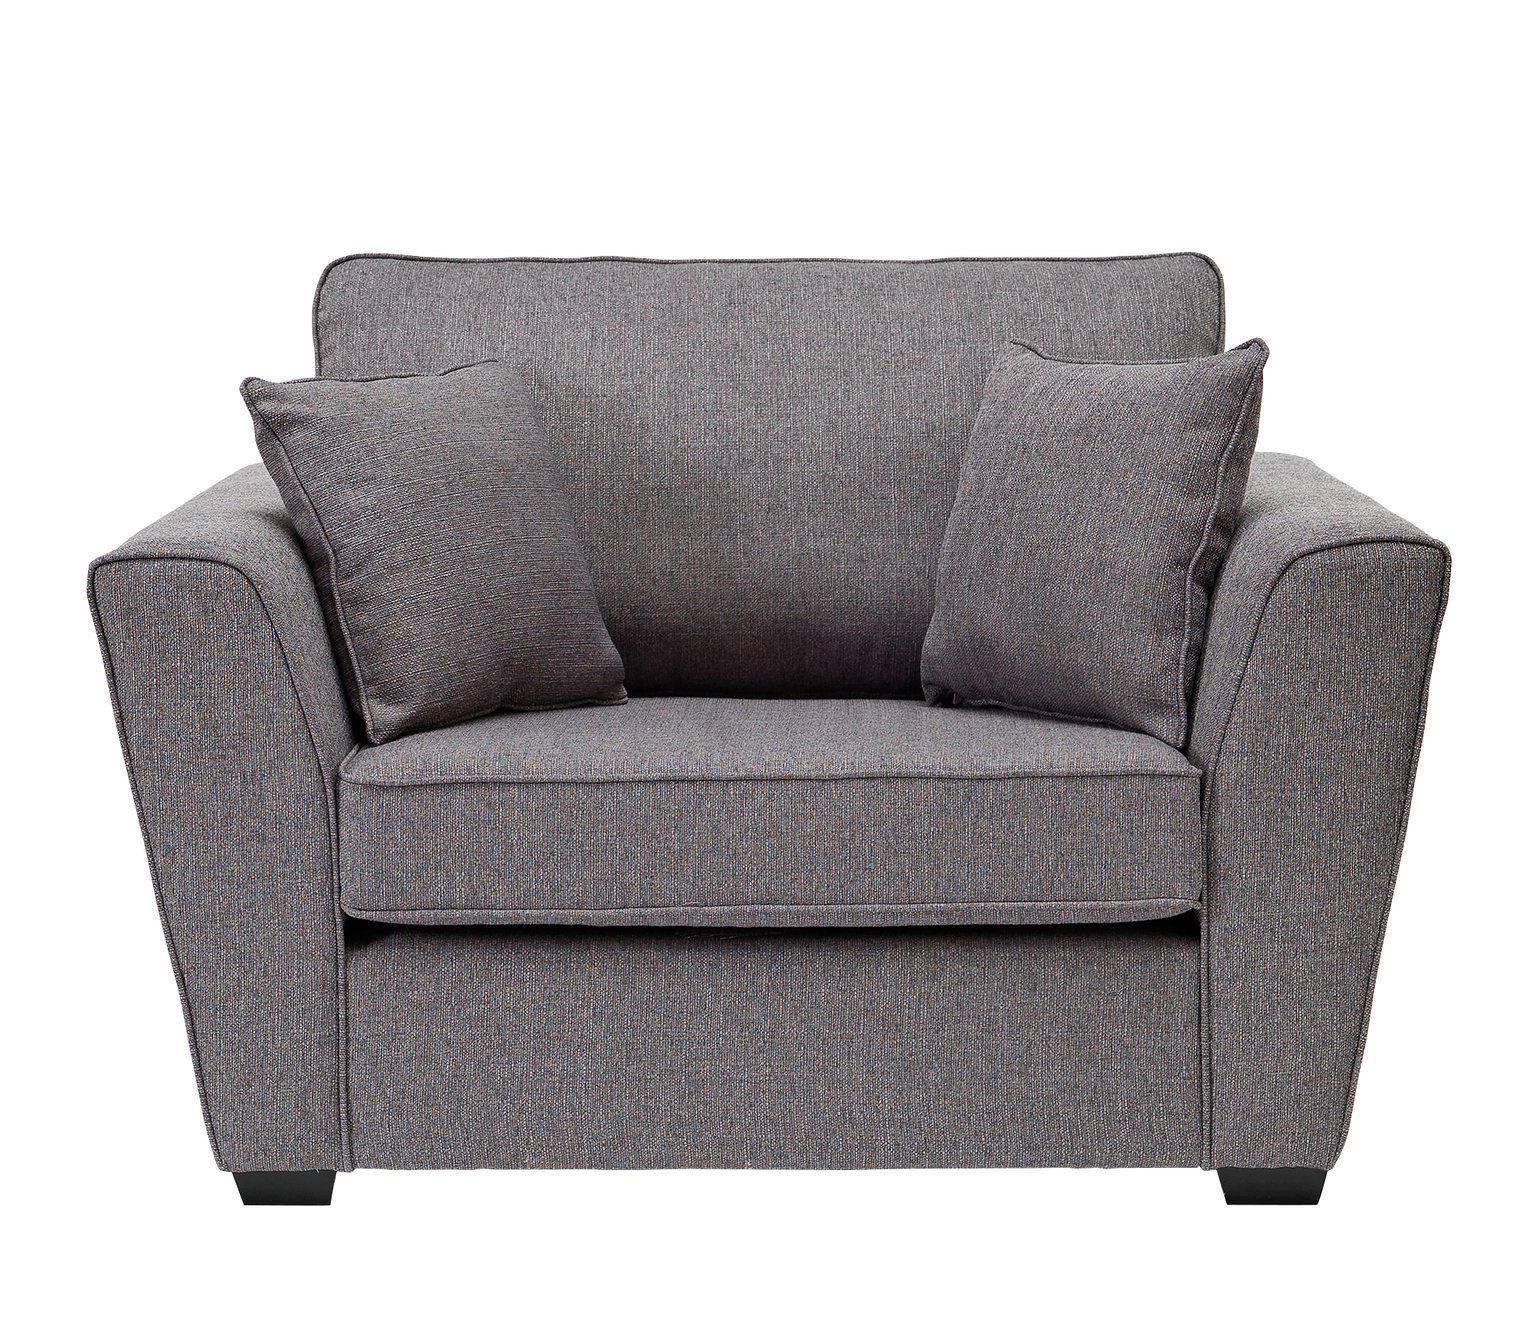 Argos Home Renley Fabric Cuddle Chair - Charcoal